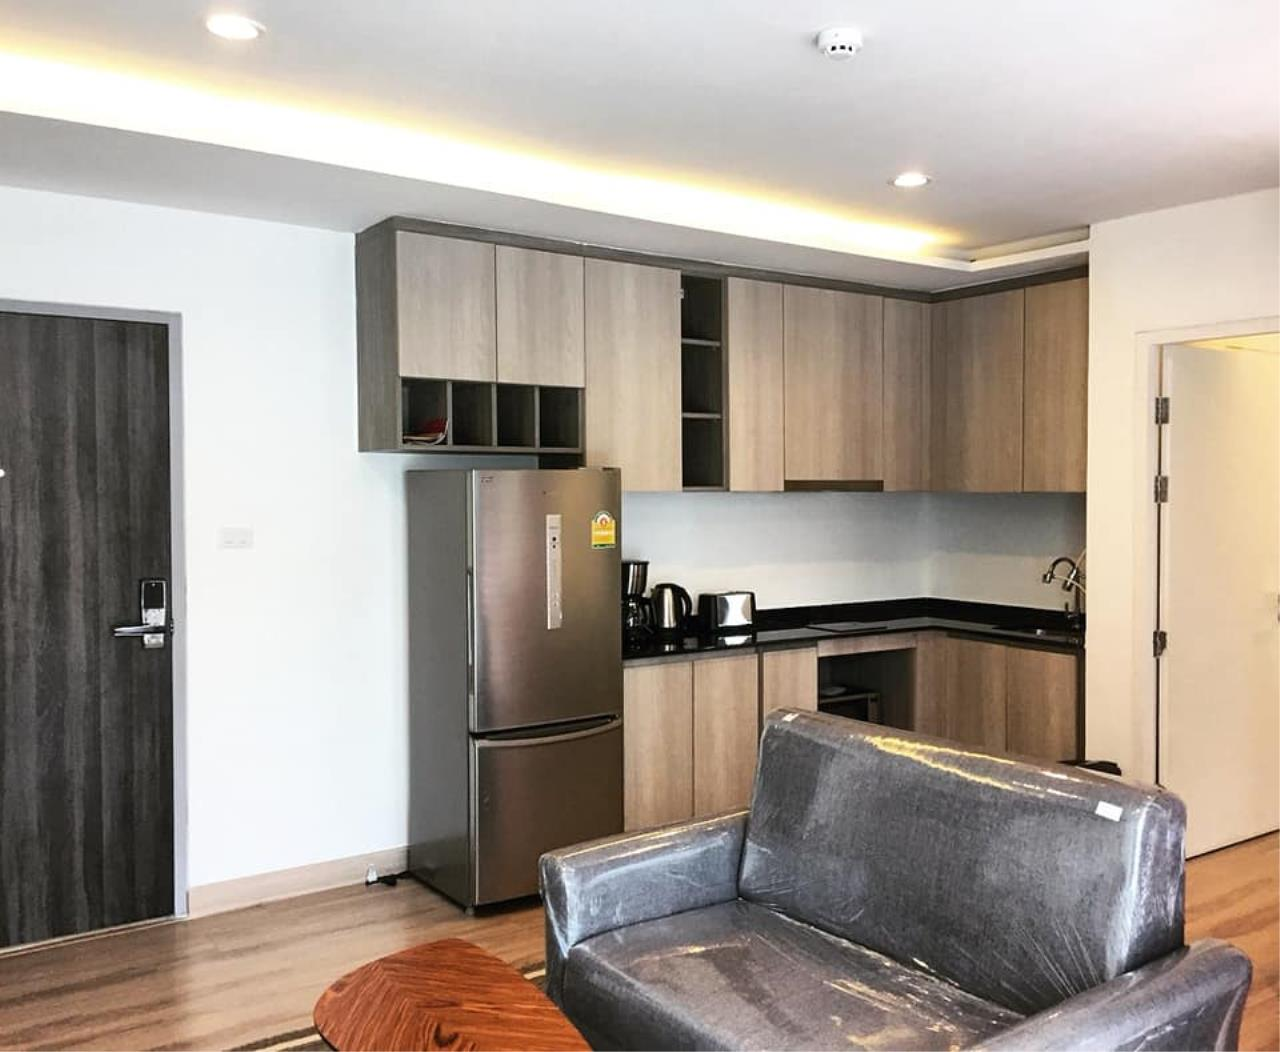 Agent - Prombood Agency's Sale - 1 Bedroom 36.5 sq.m. The Unique 19 near Ratchadapisek and Ladprao MRT Station 4